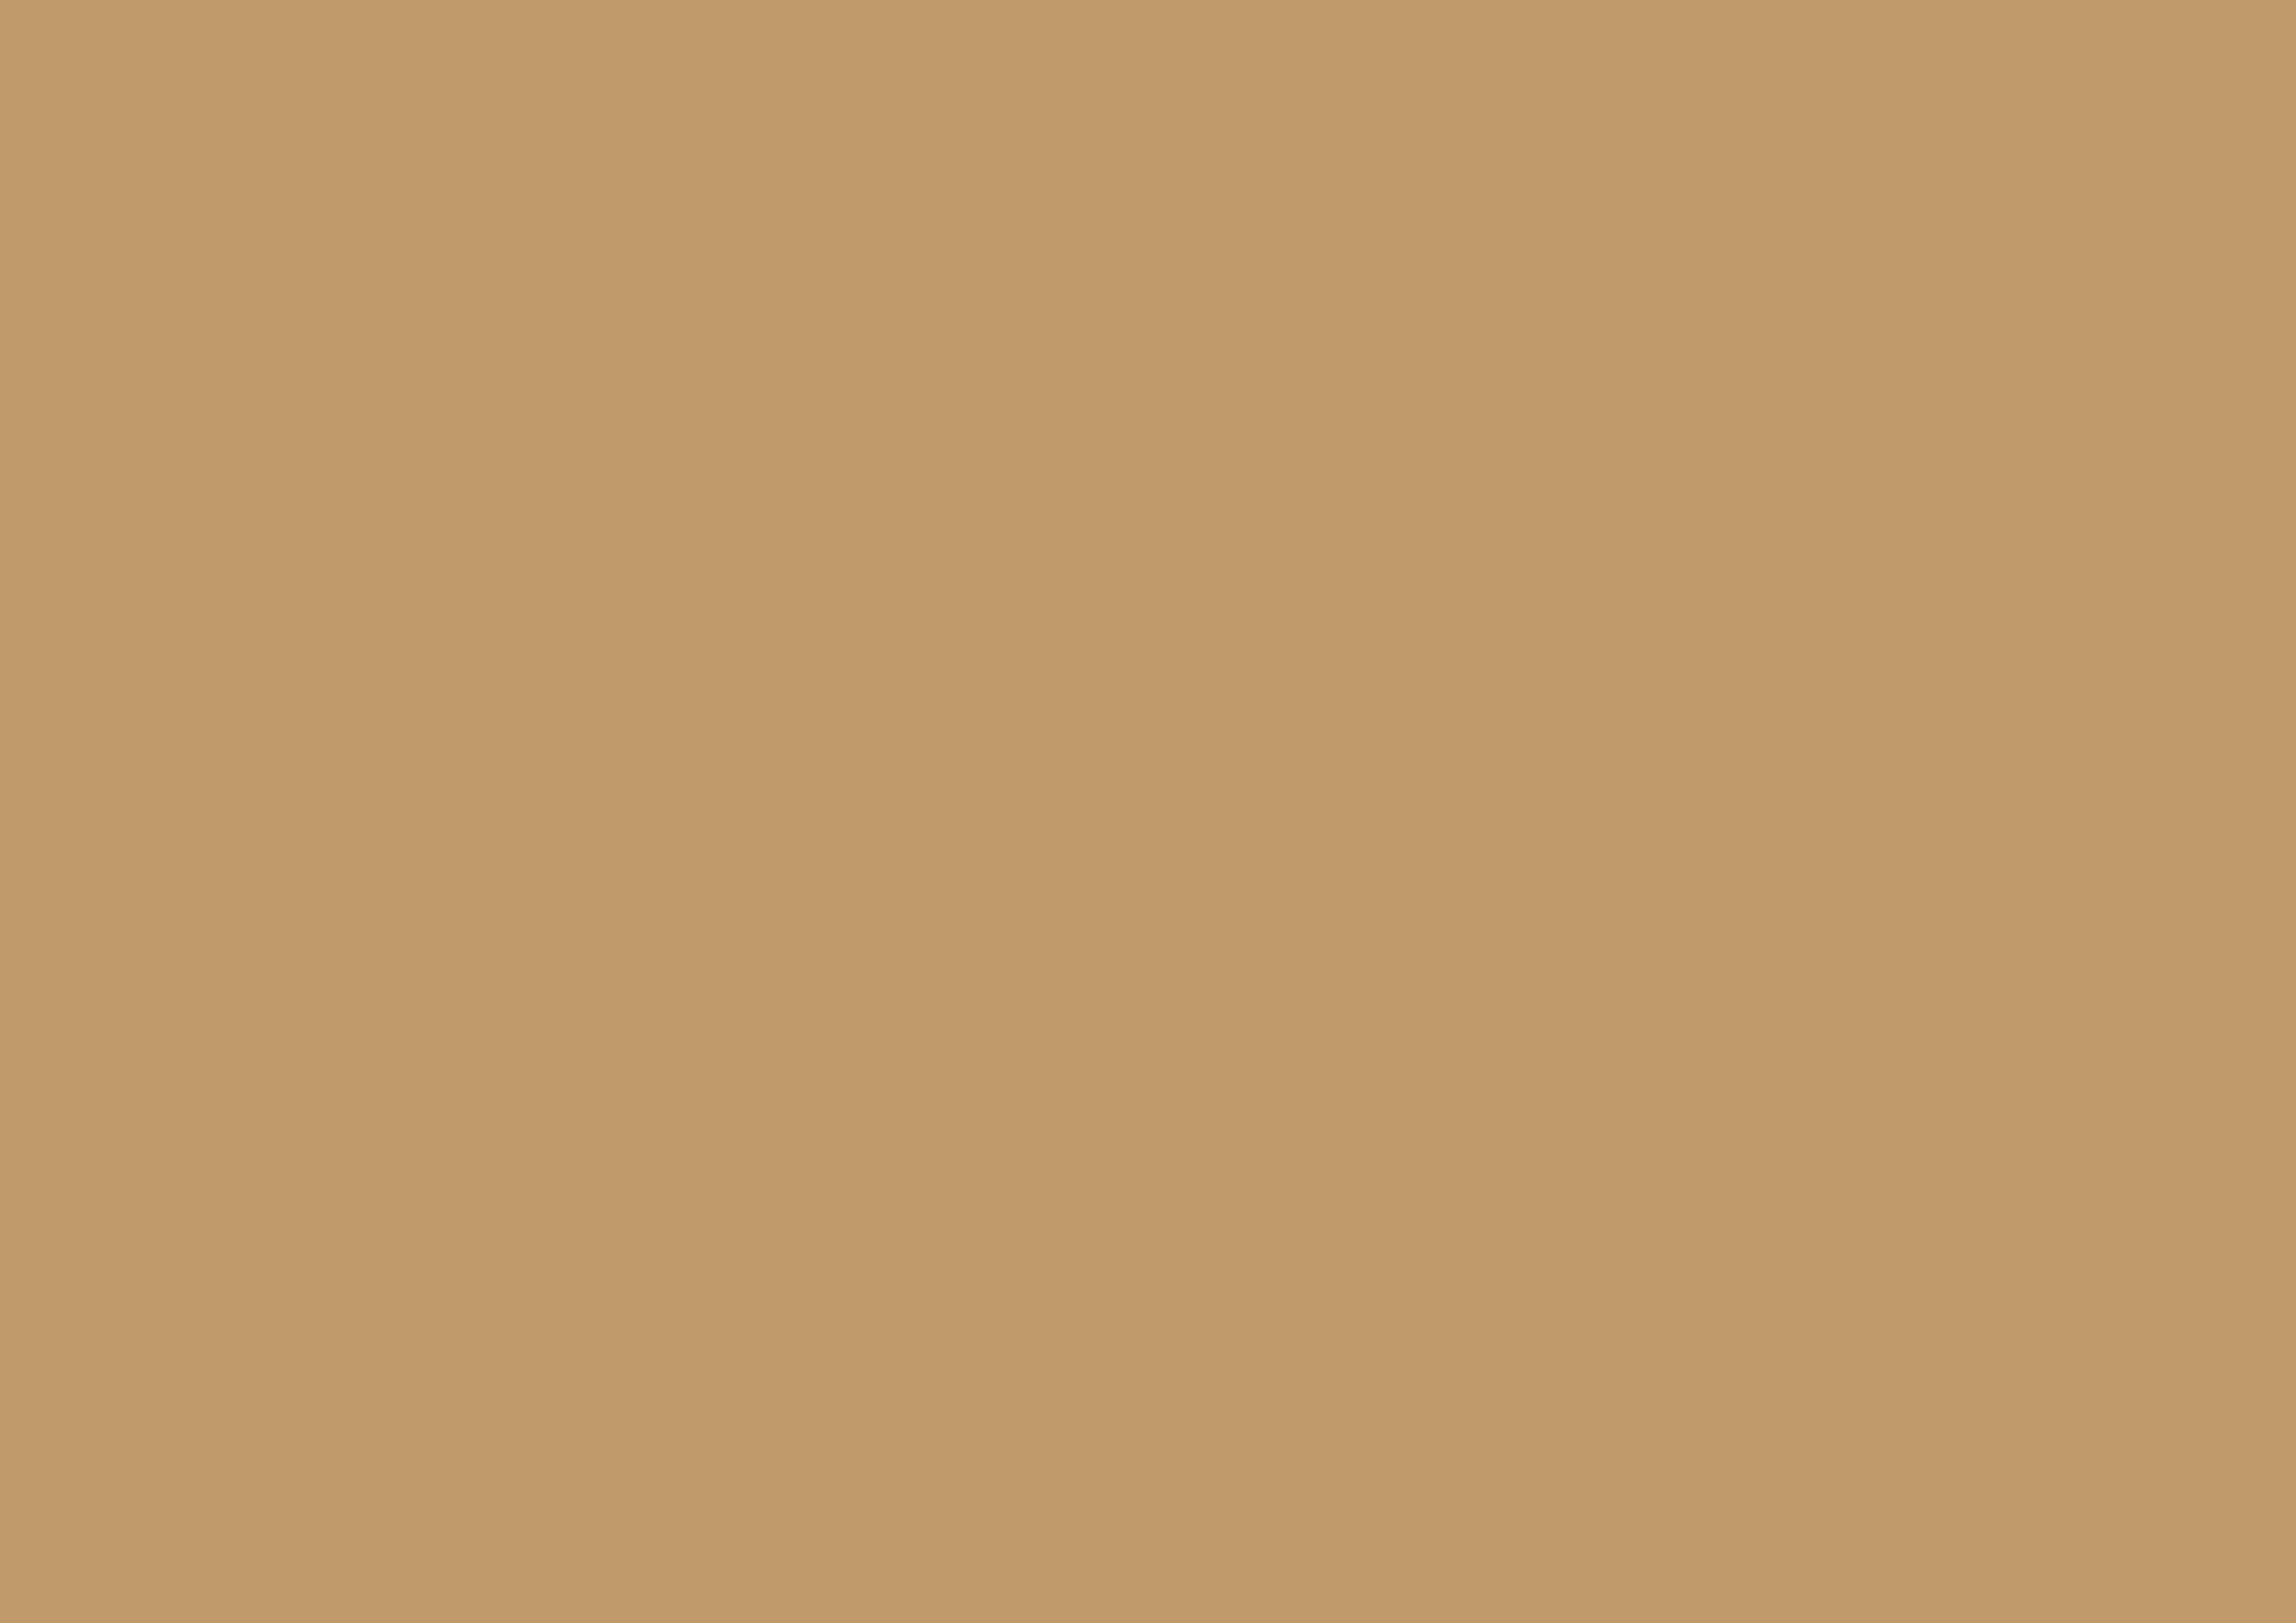 3508x2480 Fallow Solid Color Background